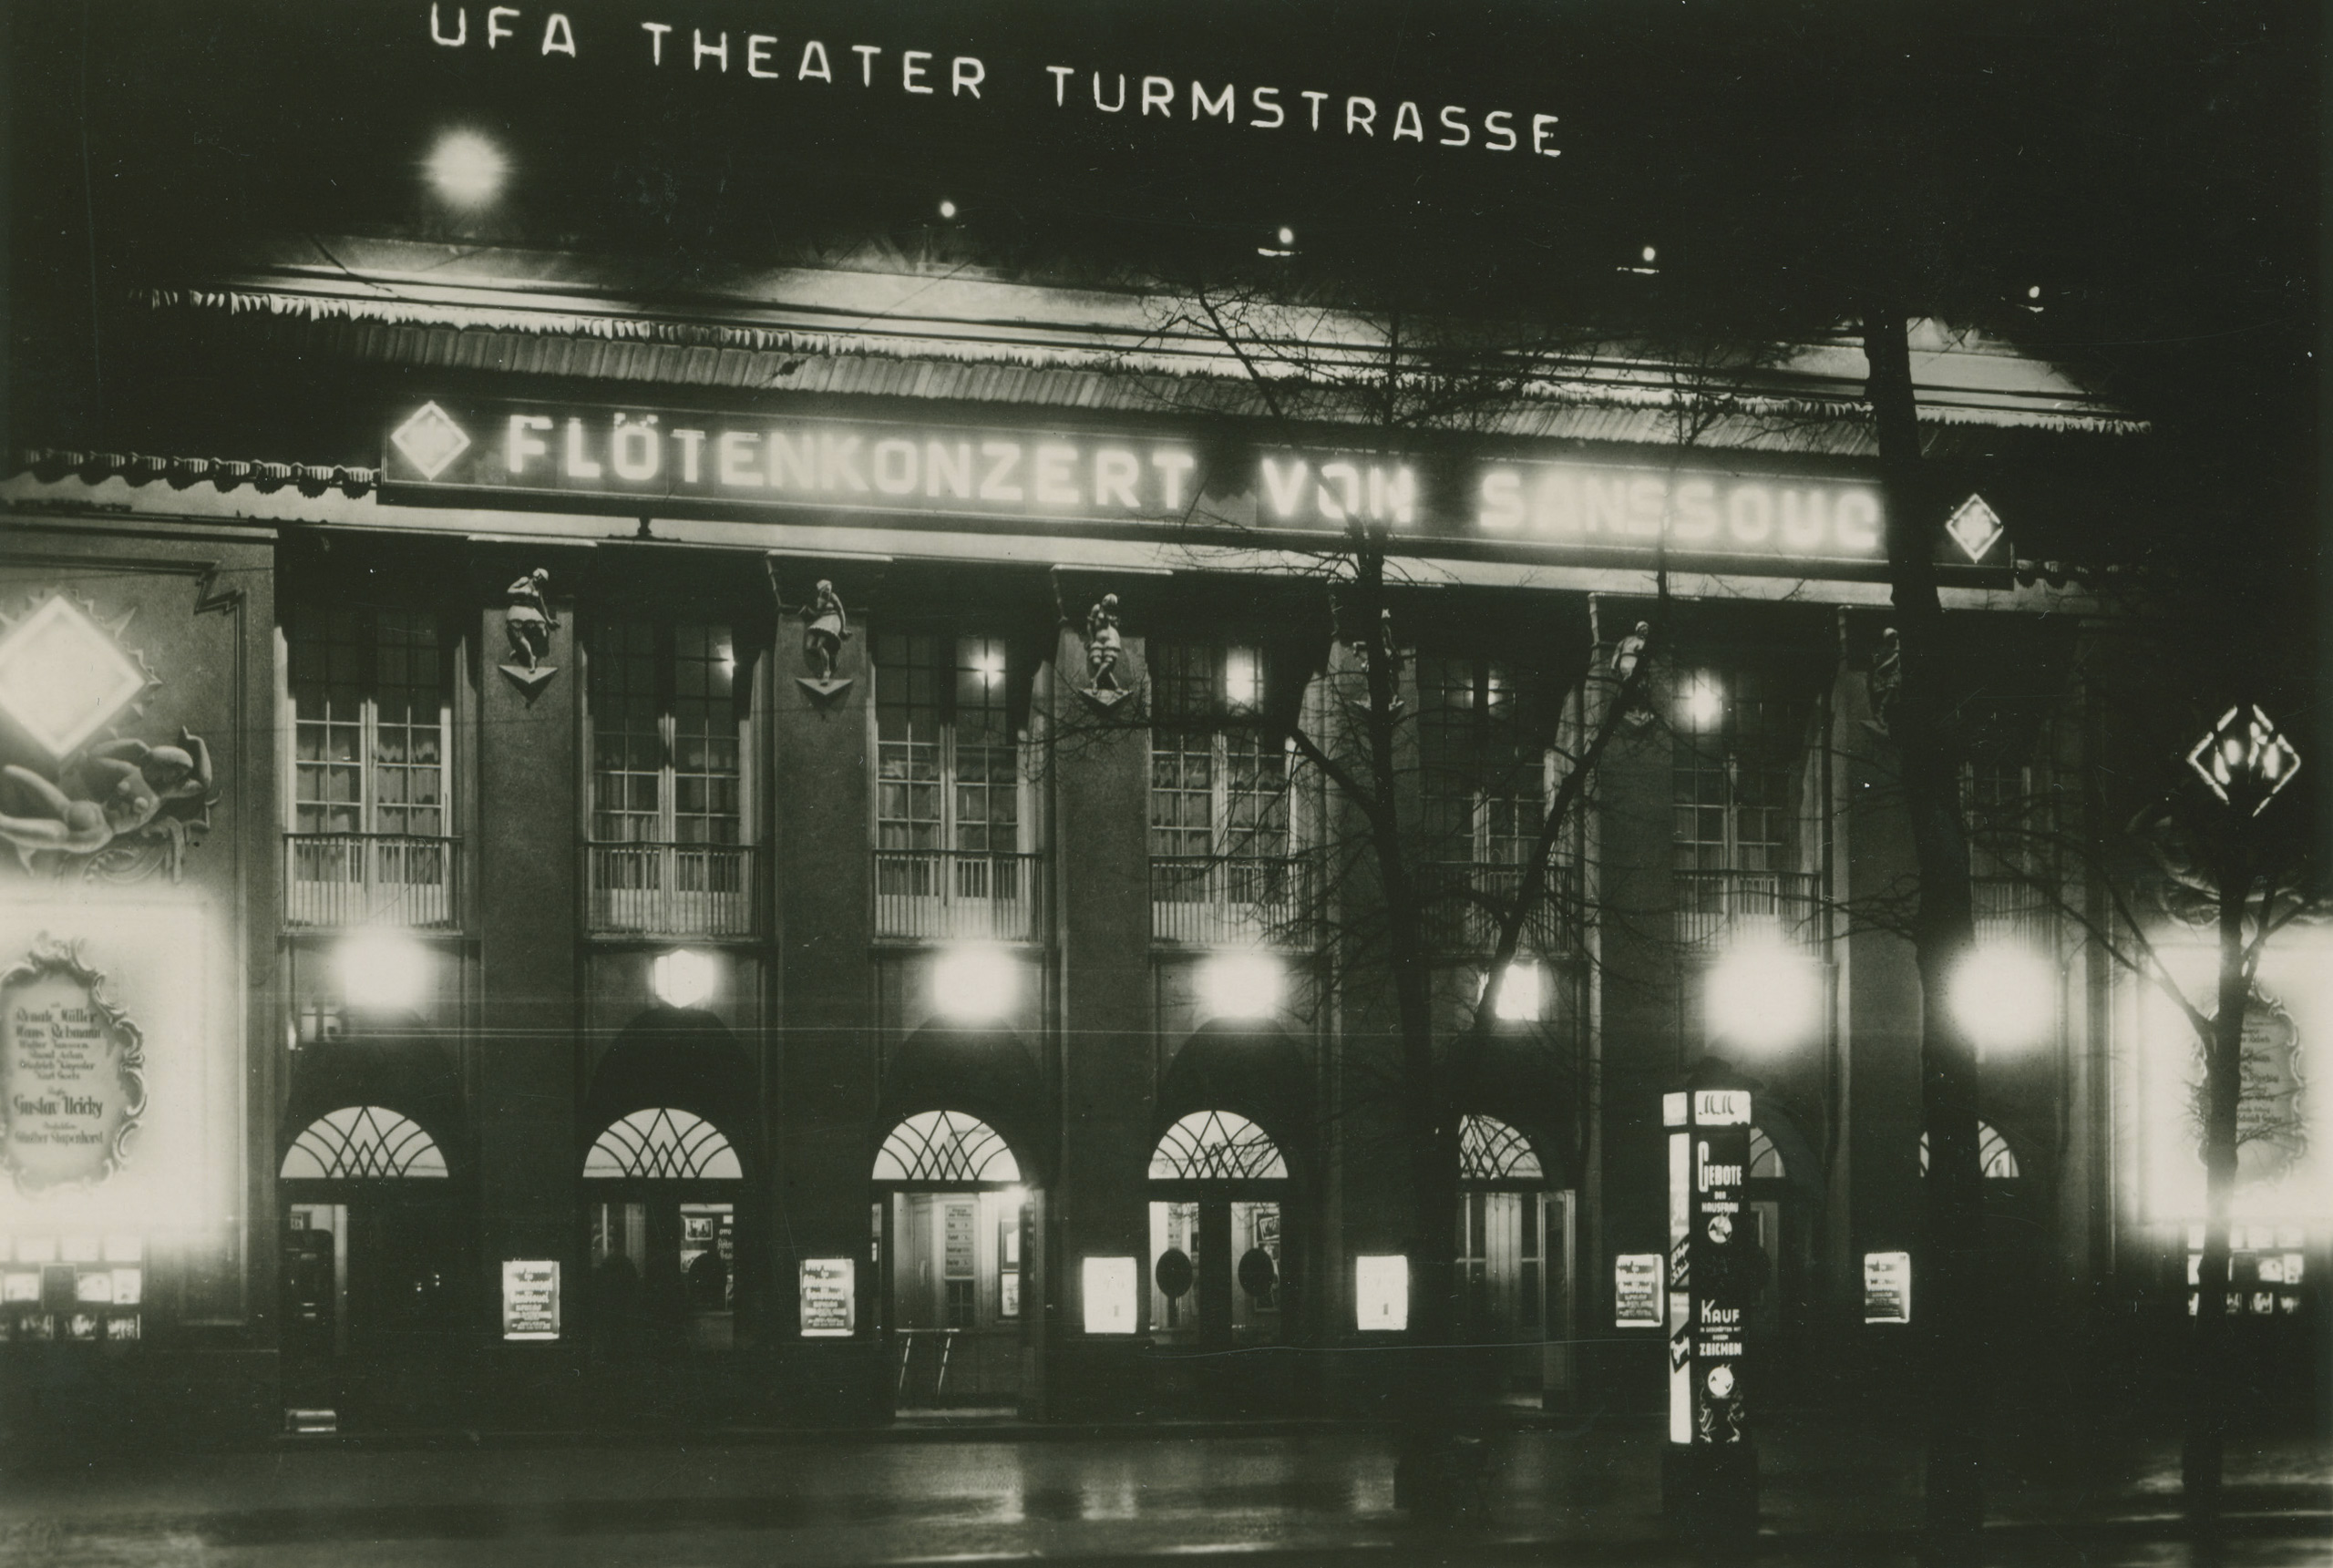 Black and white photo of the cinema façade at night with illuminated advertisements